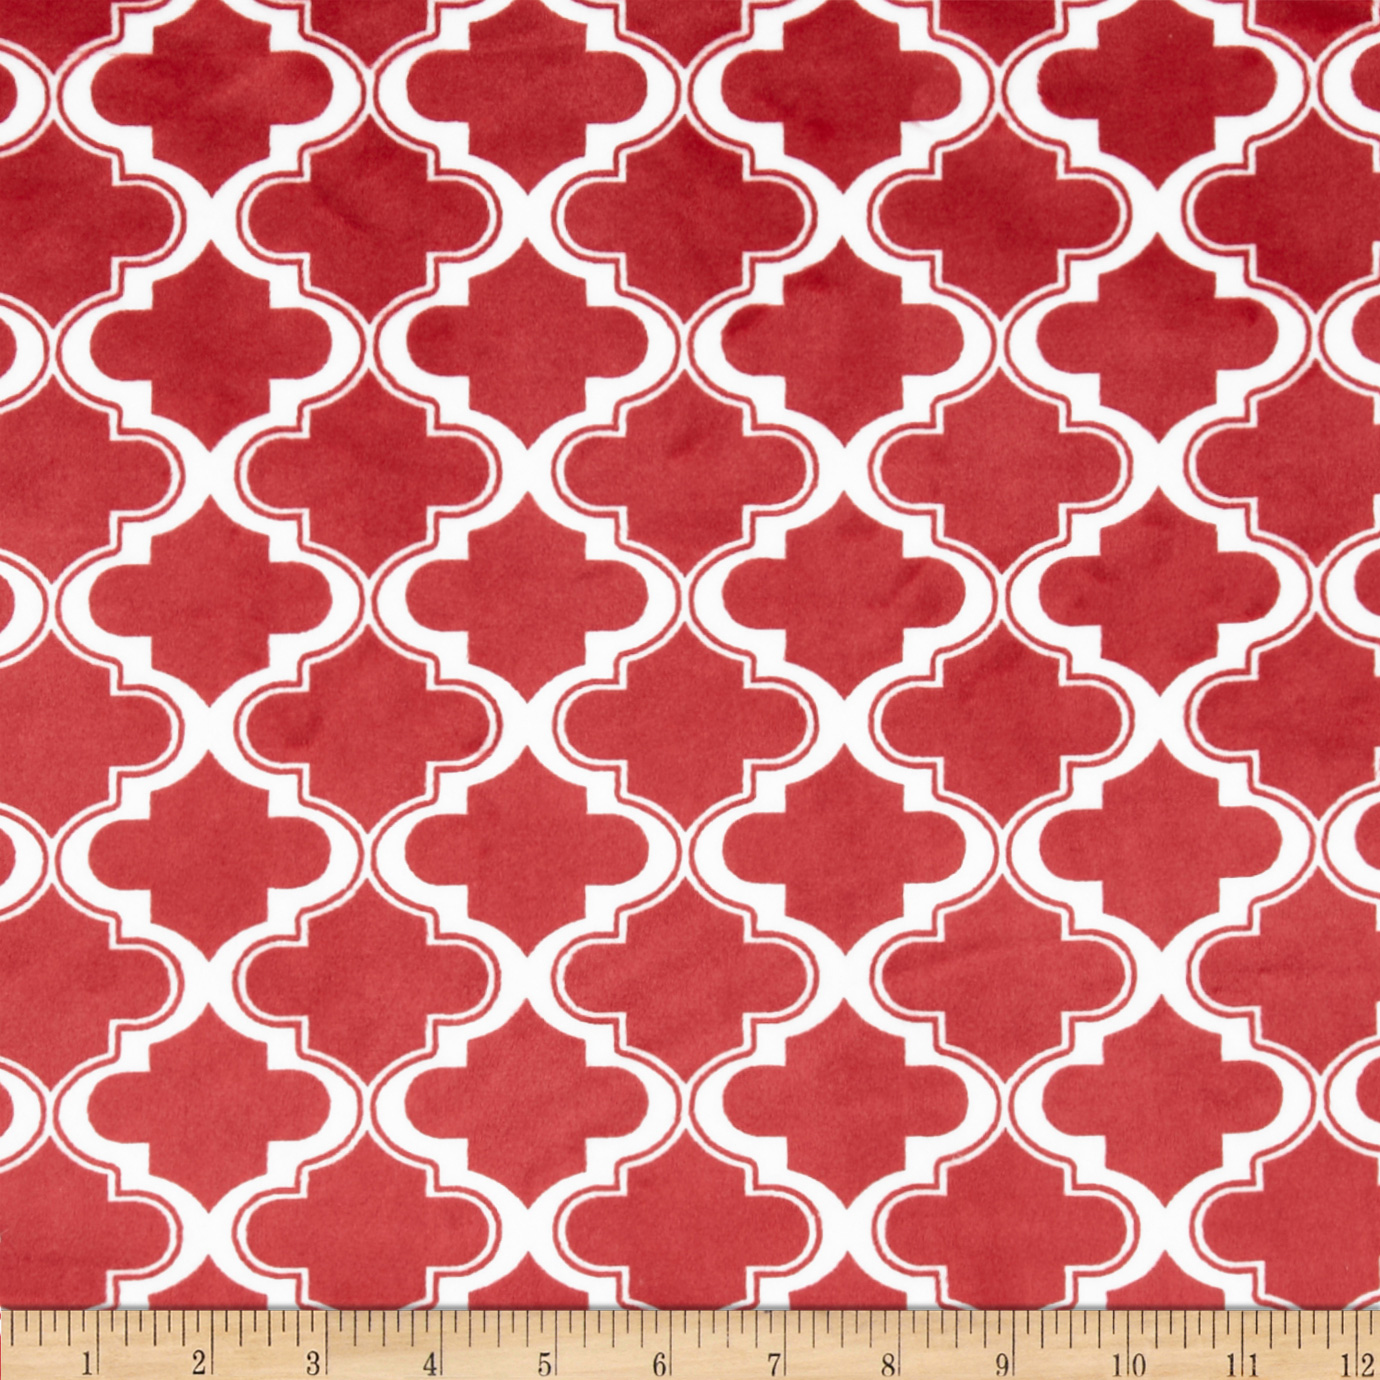 Minky Moroccan Tile Brick Red Fabric